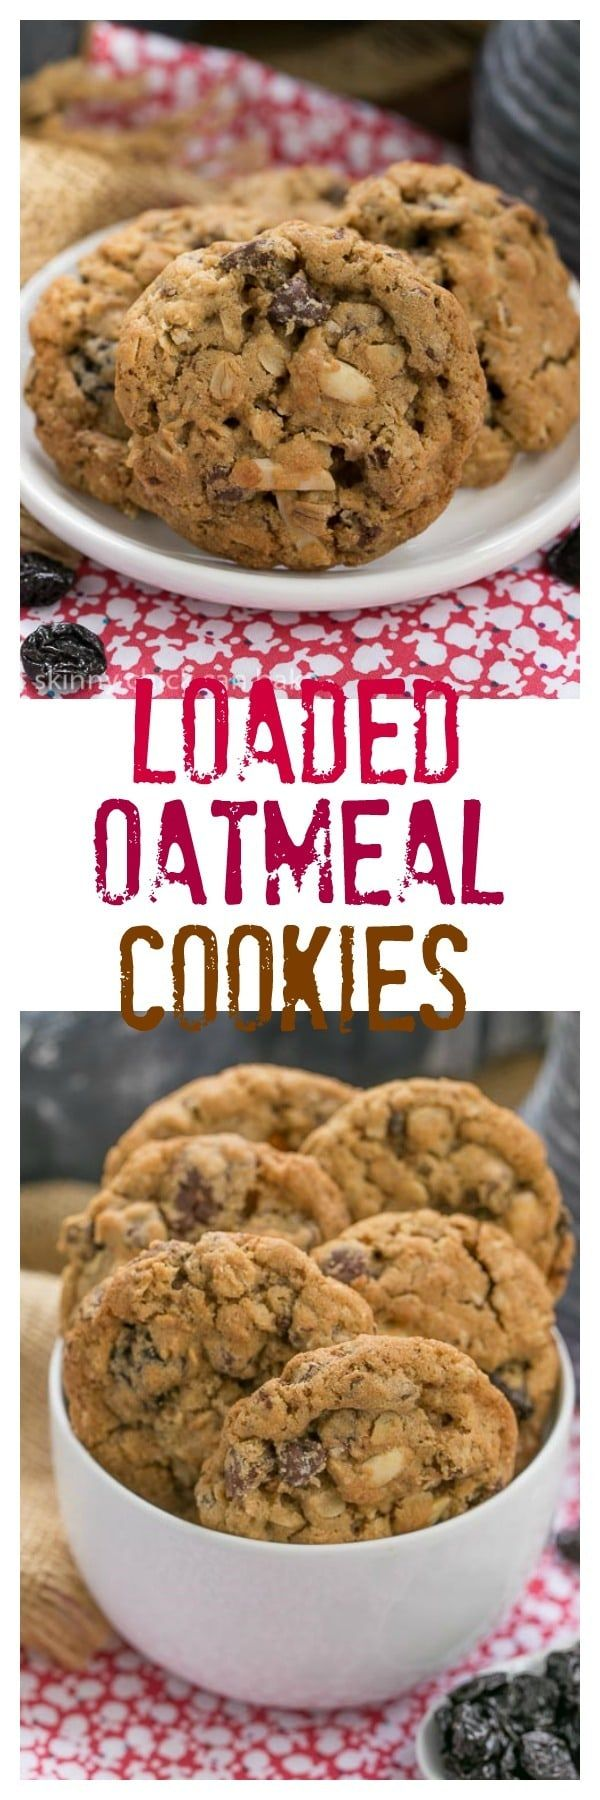 Loaded Oatmeal Cookies | Chewy oatmeal cookies filled with almonds, dried cherries and chocolate